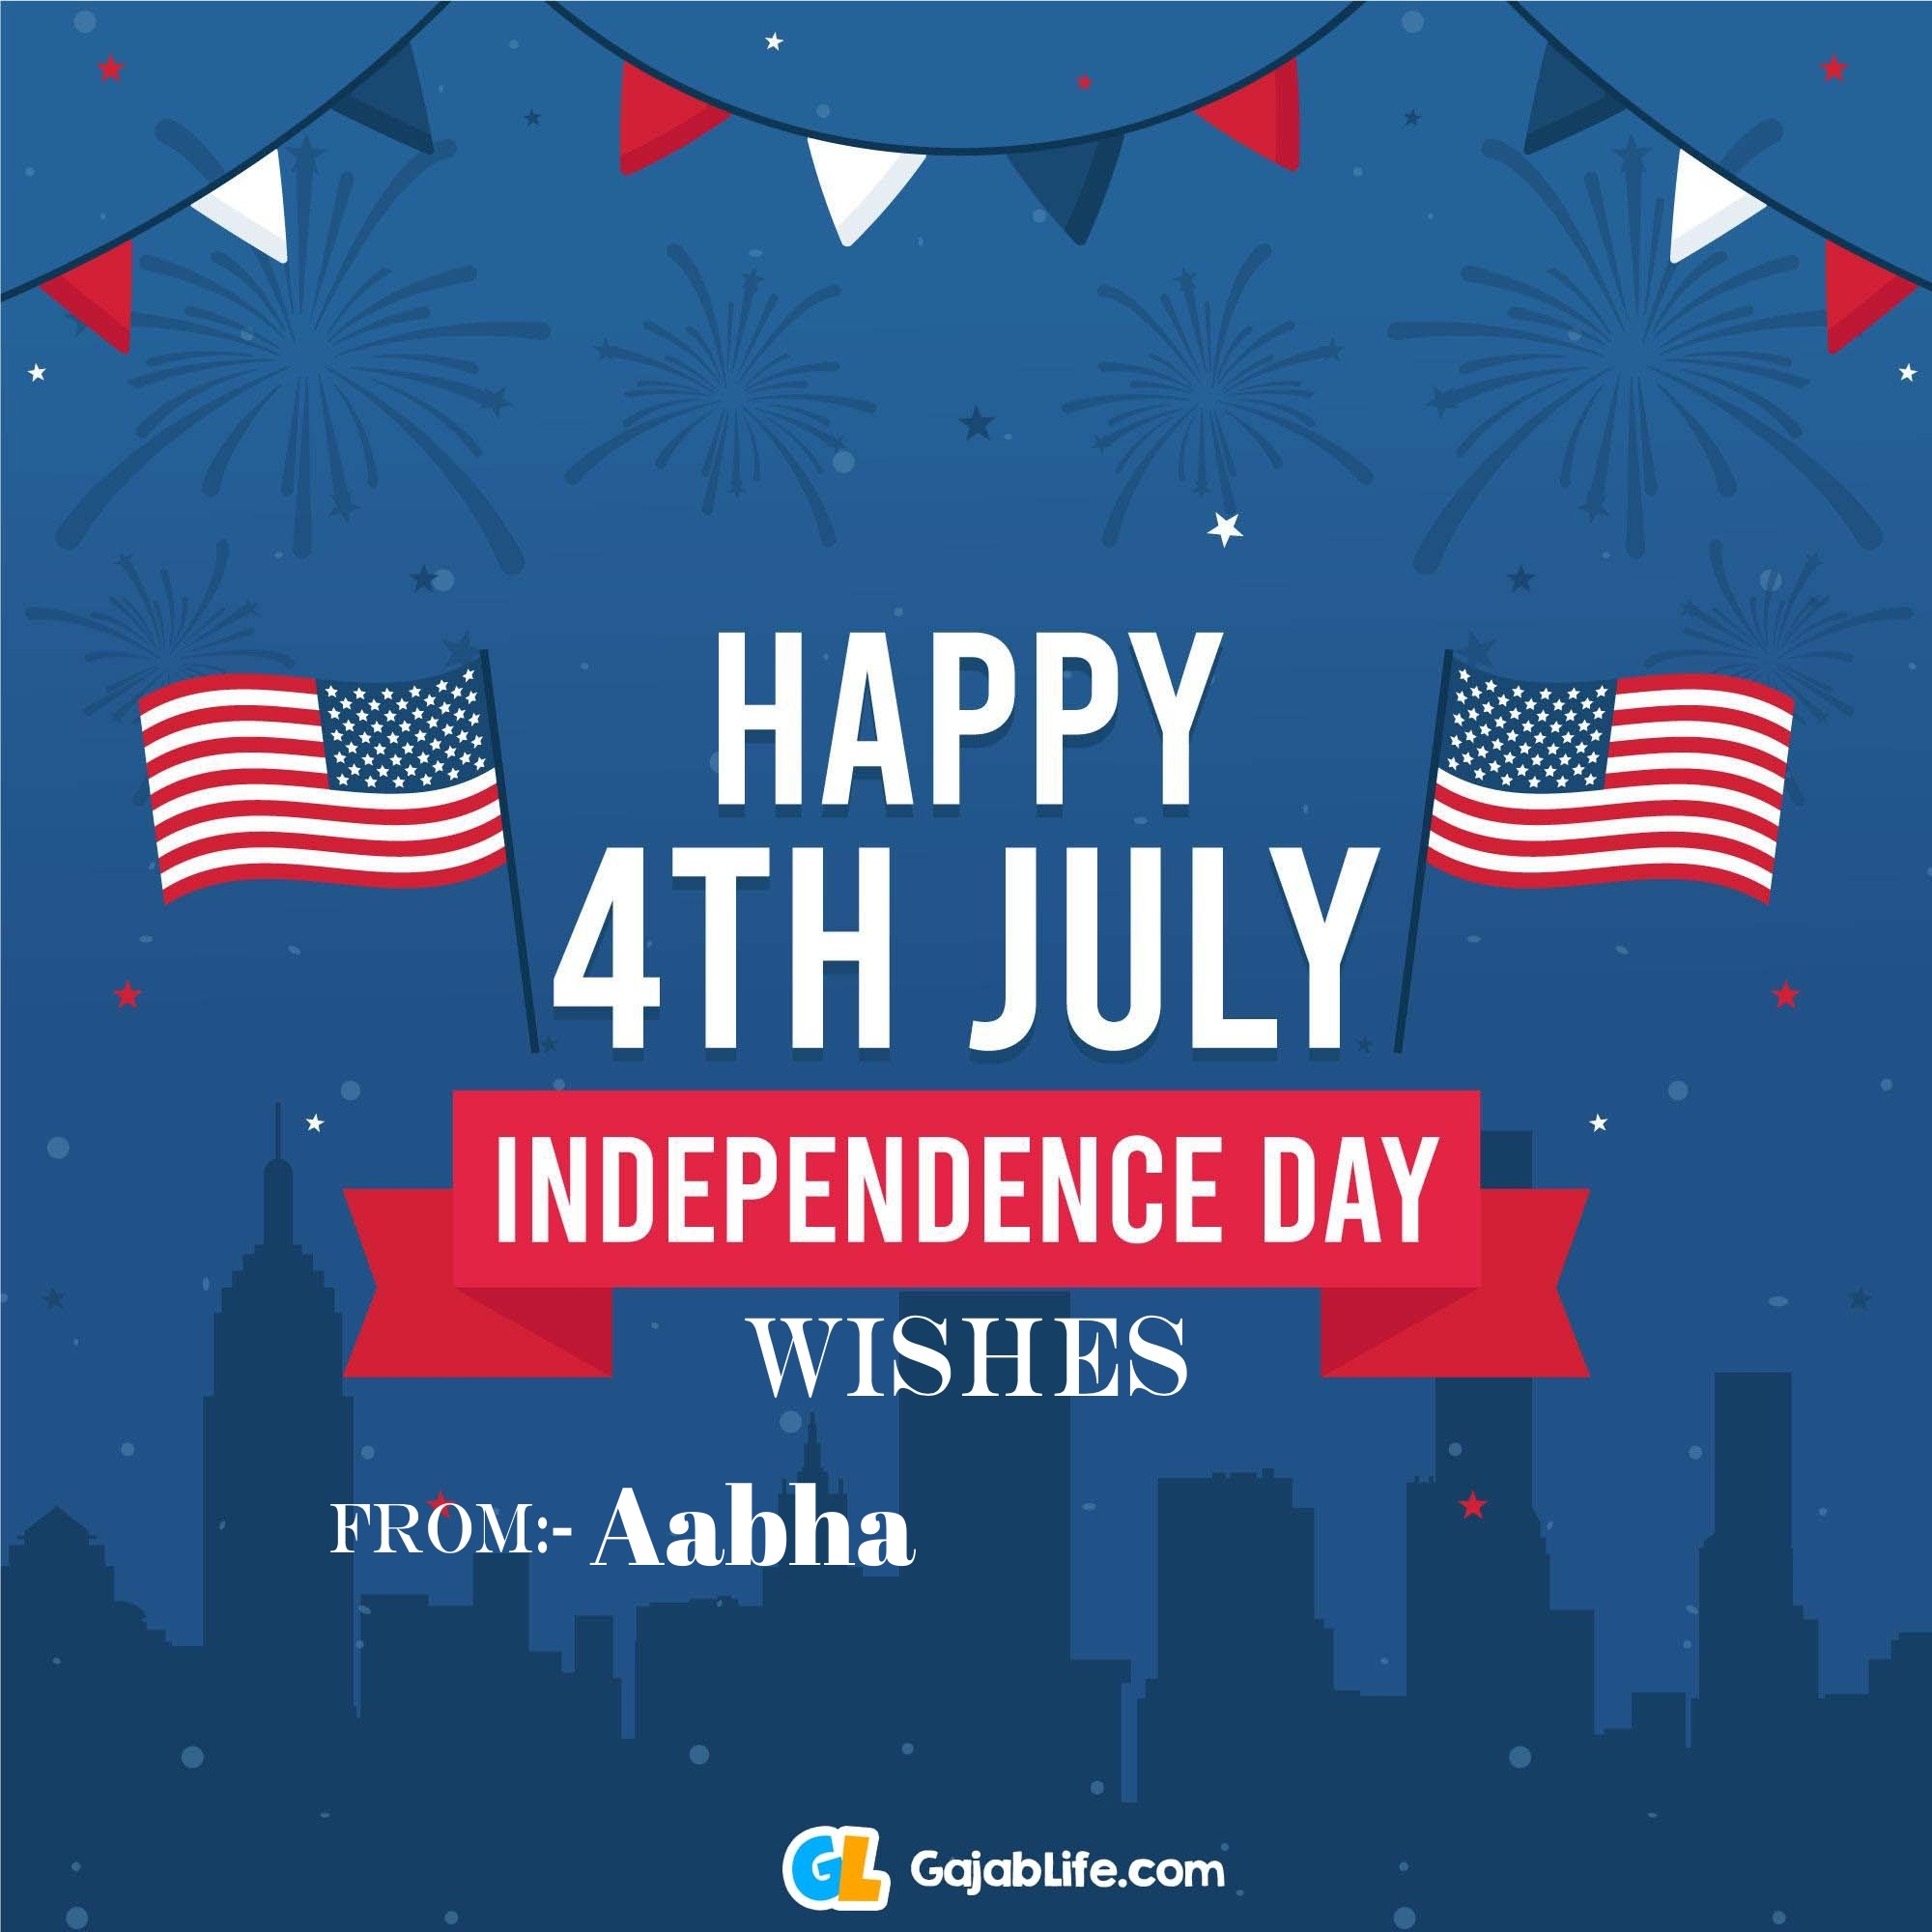 Aabha happy independence day united states of america images